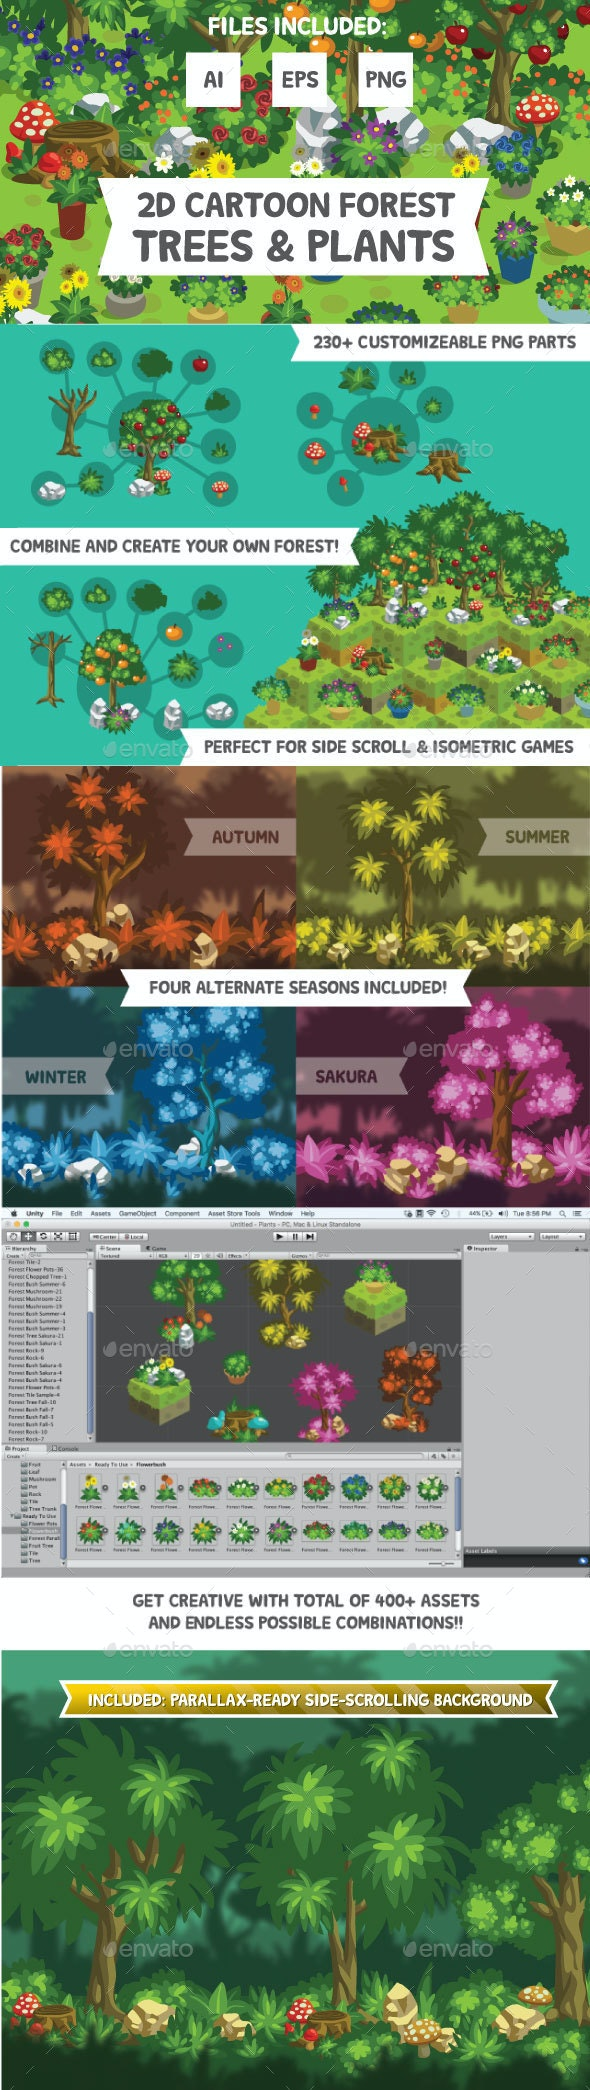 2D Cartoon Forest Trees & Plants - Miscellaneous Game Assets